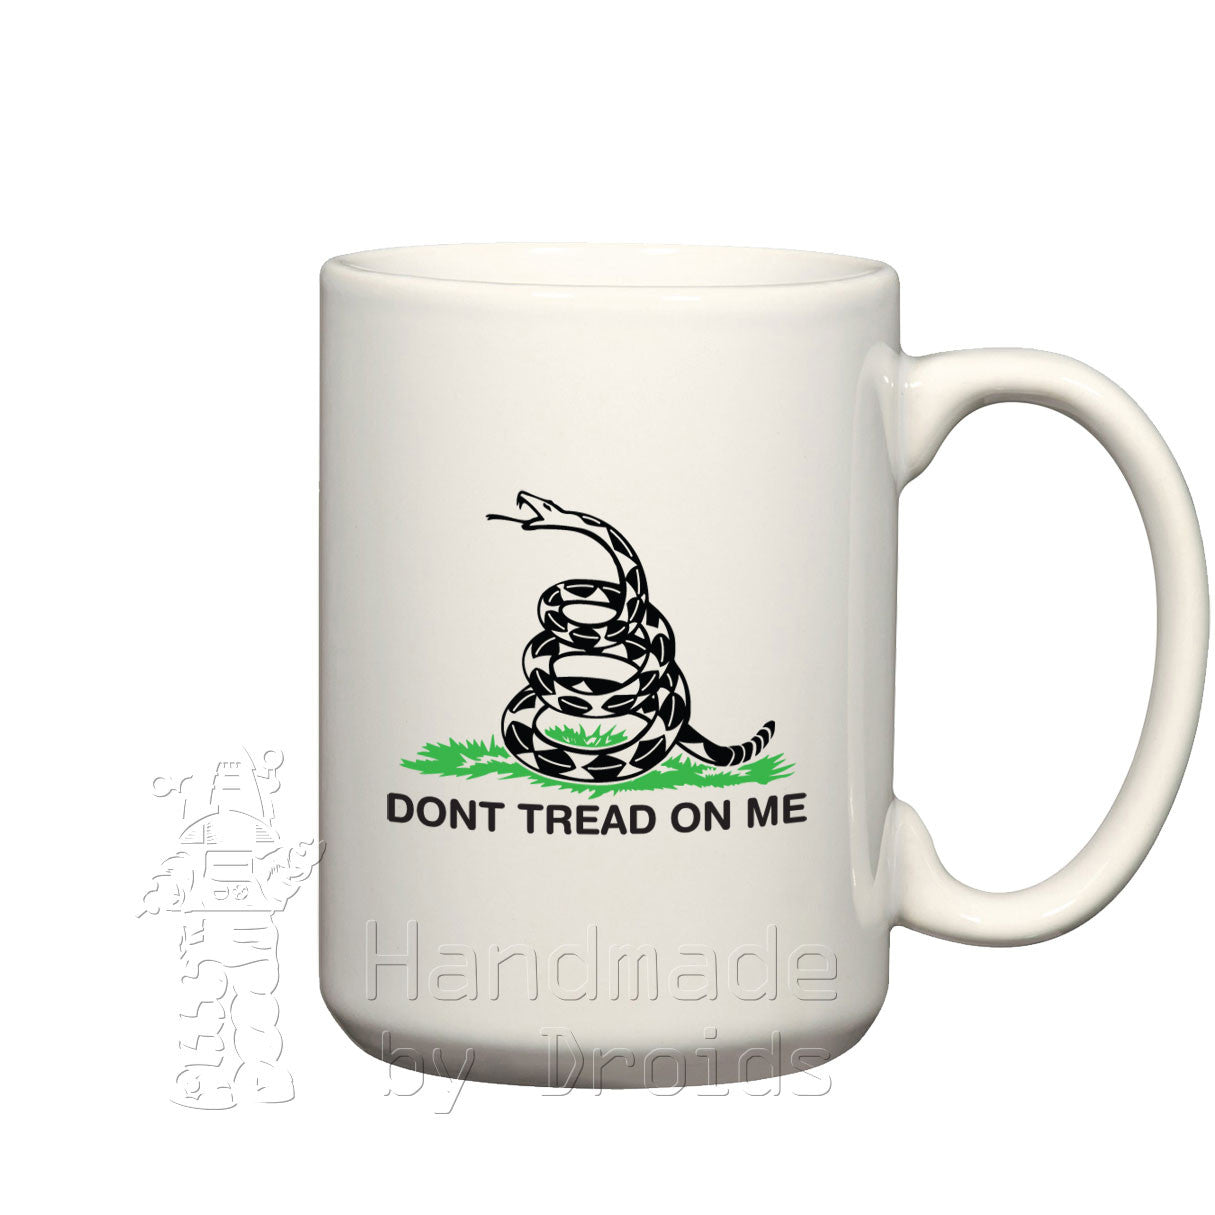 """Dont tread on me"" Gadsden (rattlesnake) Flag mug"